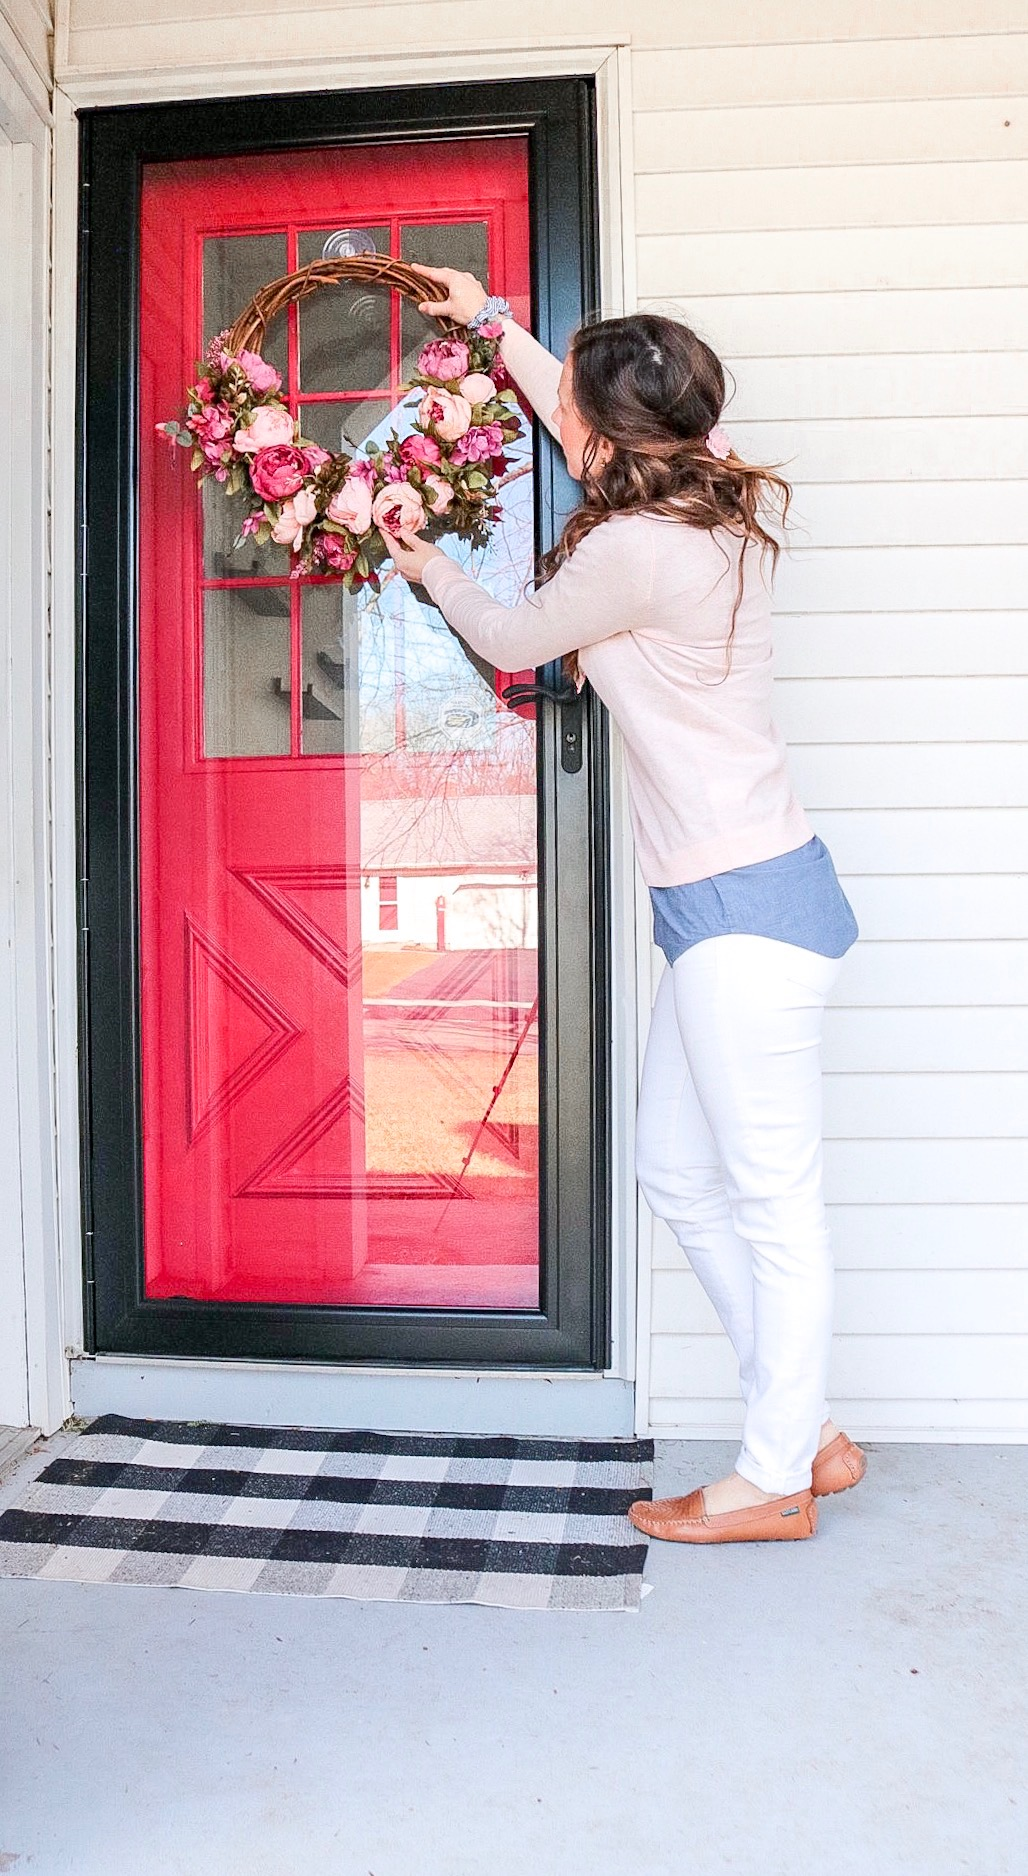 woman in pink sweater and light blue shirt with white pants hanging a pink floral wreath on a storm door outside